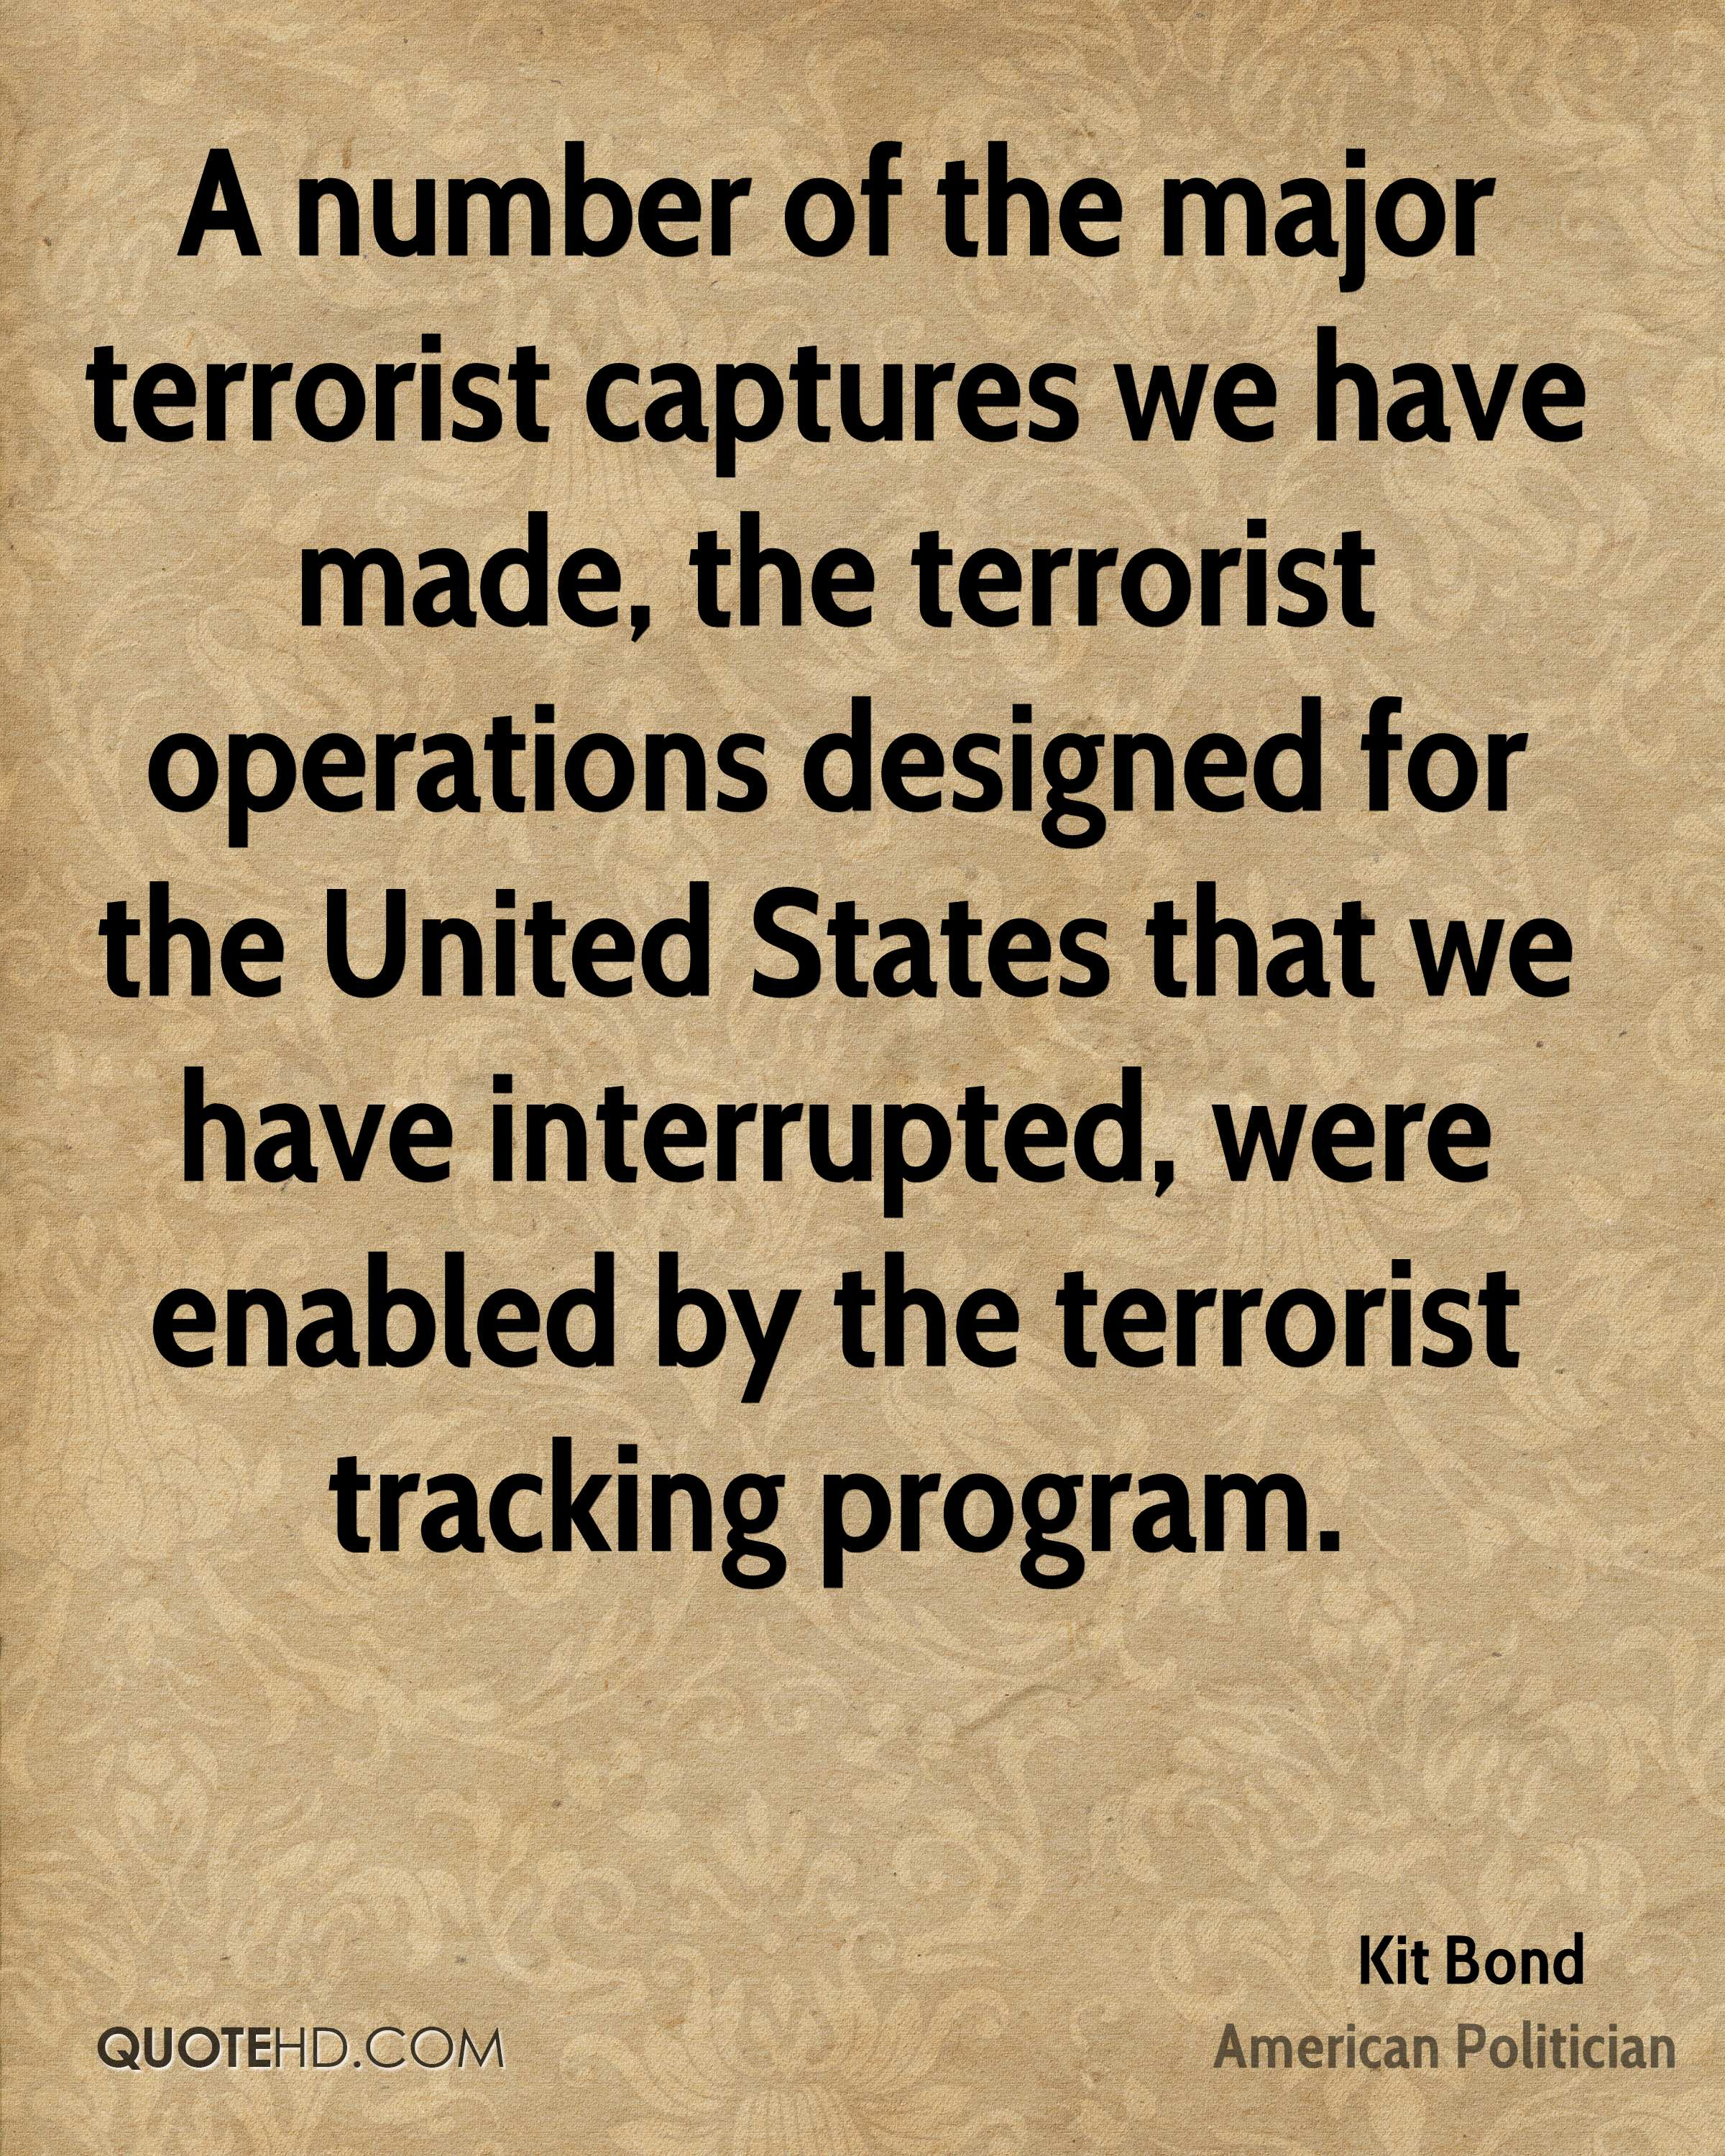 A number of the major terrorist captures we have made, the terrorist operations designed for the United States that we have interrupted, were enabled by the terrorist tracking program.